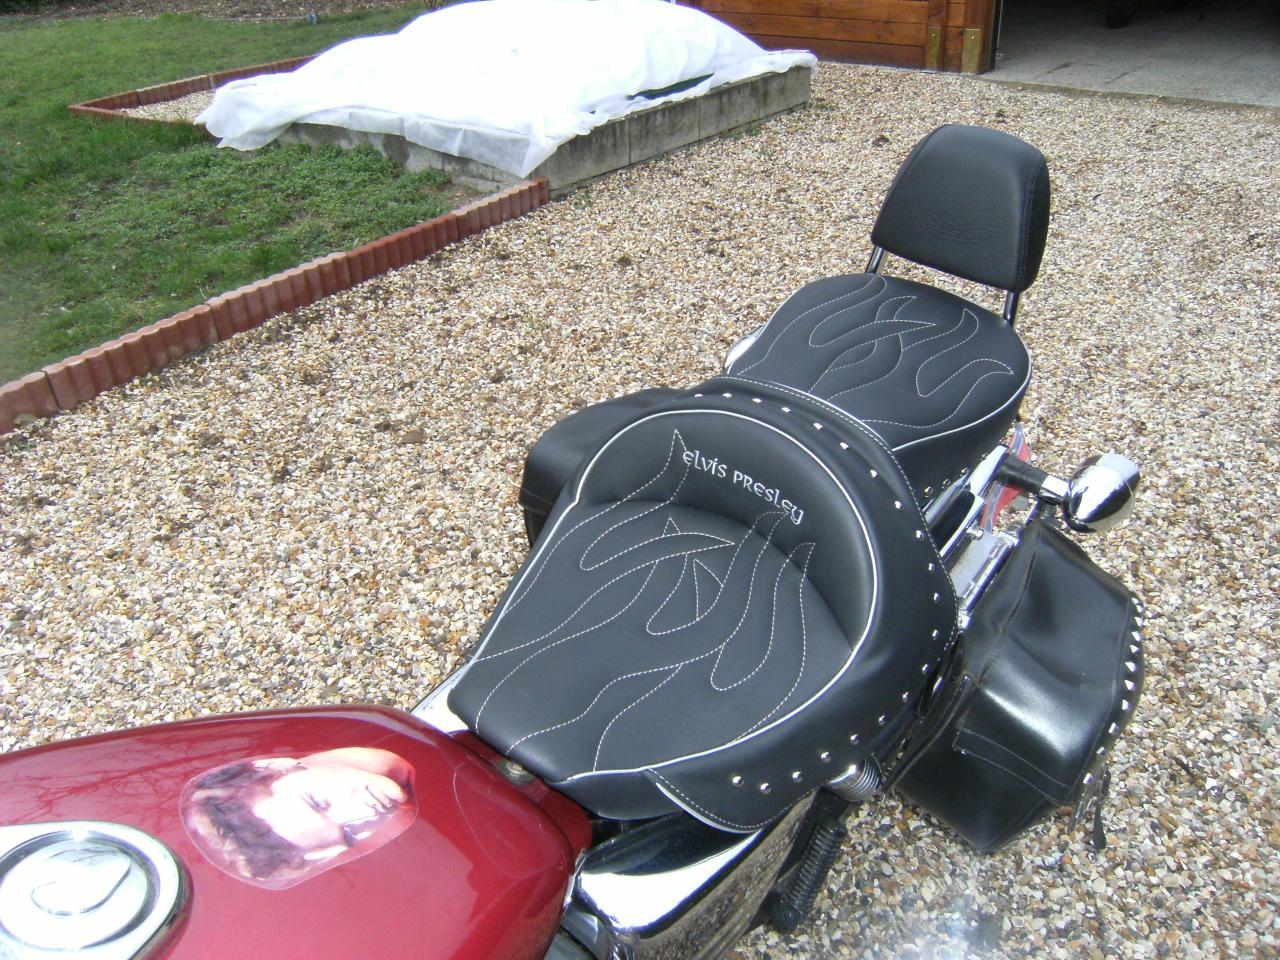 Honda Shadow Vt 125 C Deluxe Seats Petrol Tank Covers Tank Bags Rates For United States